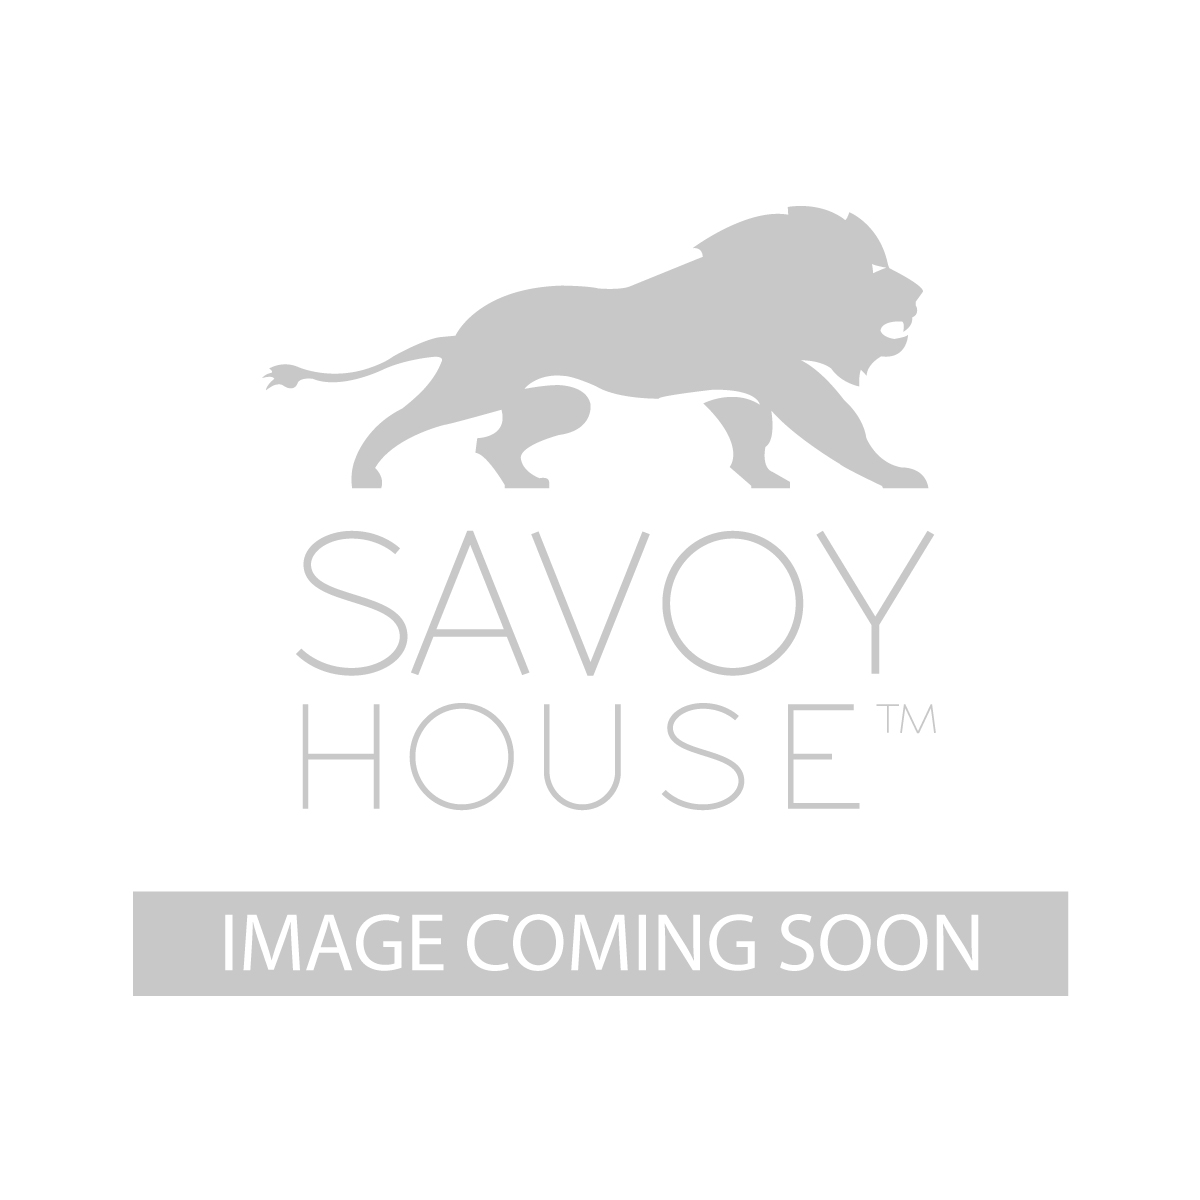 Ceiling Fans by Savoy House